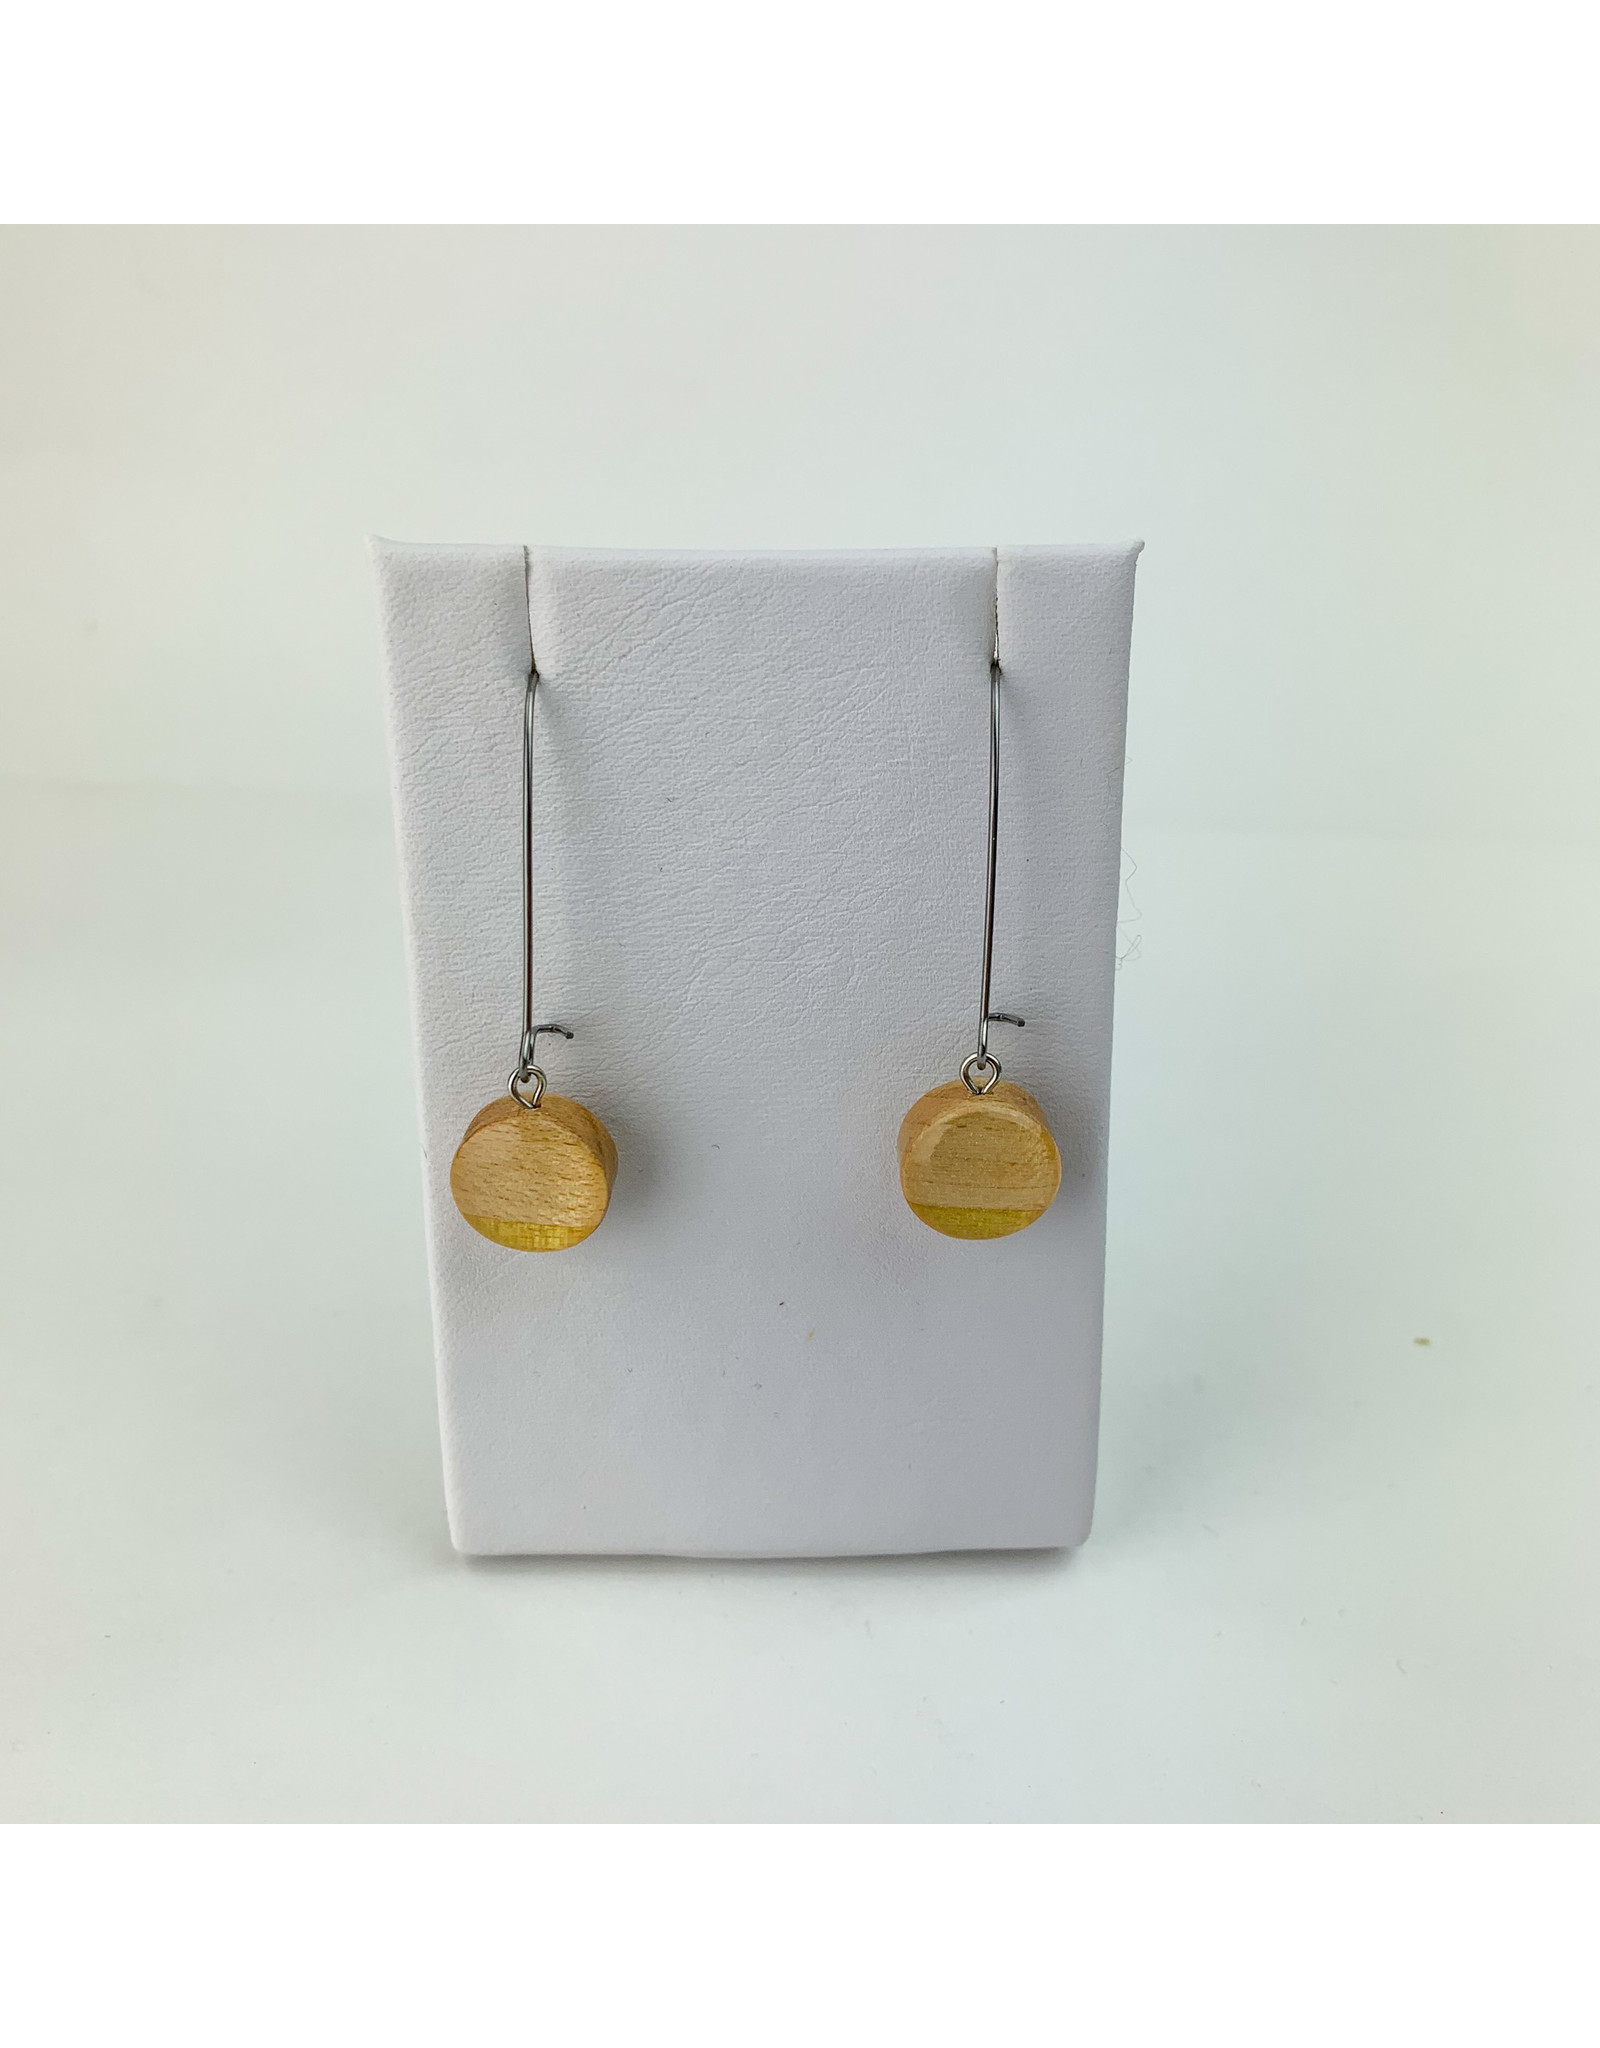 Melinda Wolff-consignment earrings; circle w/ loop - E3-L consignment